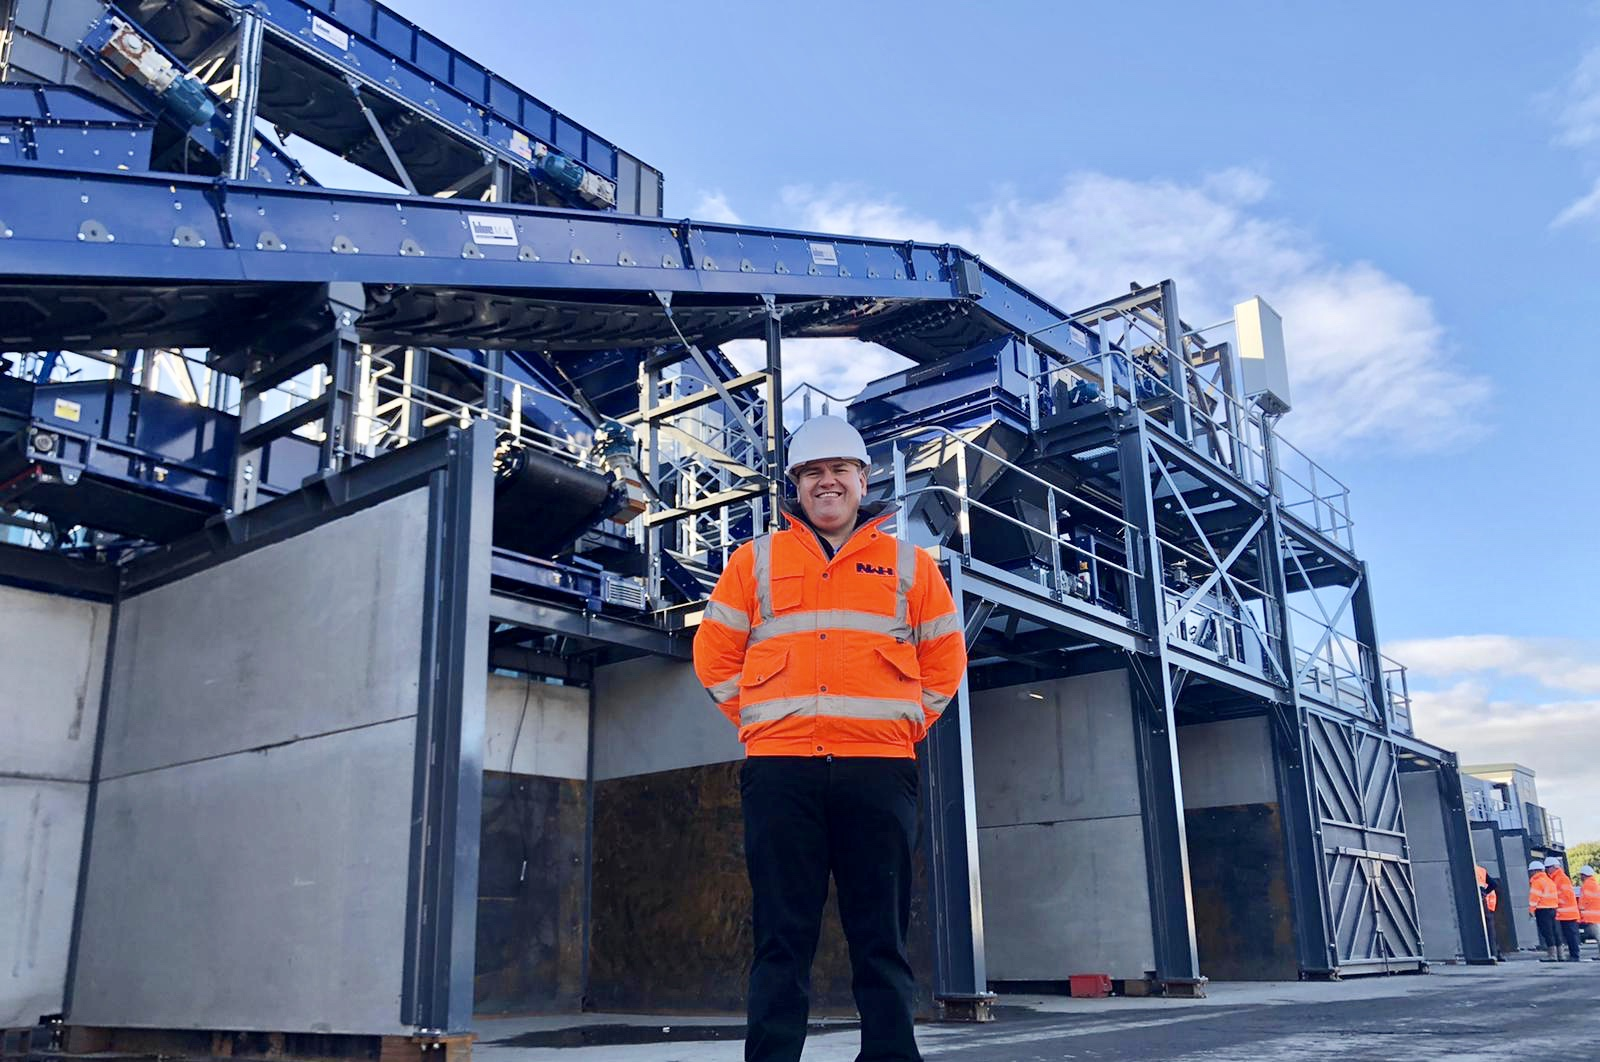 The NWH Group Invests £2 Million In Green Super Plant With HSBC UK Support